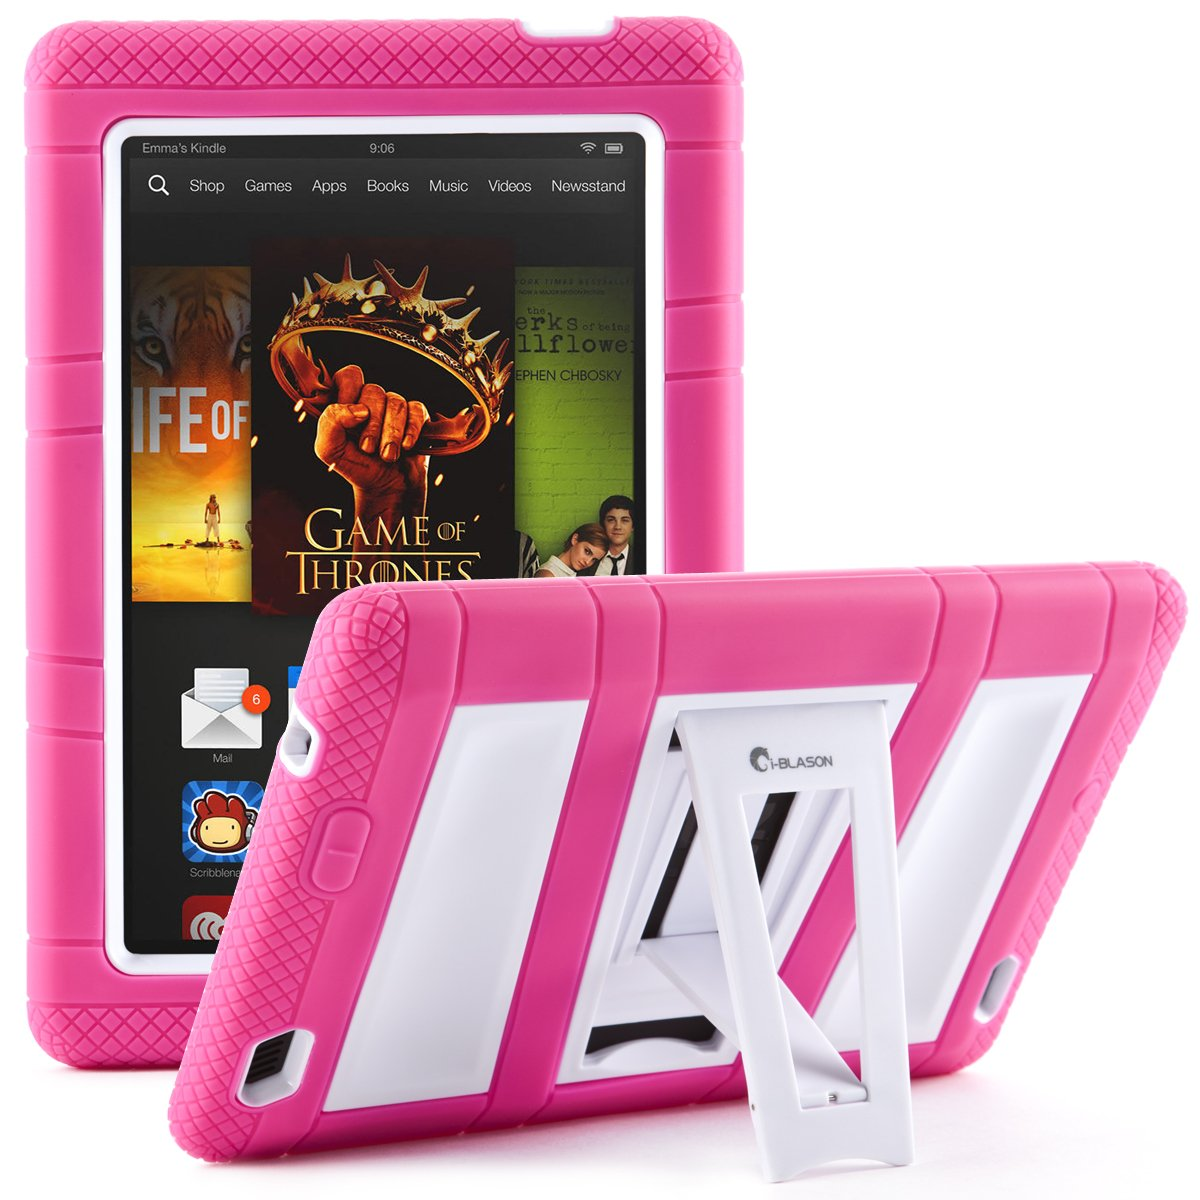 Kindle fire protective case kindle fire protective case images - Amazon Com I Blason Kid Friendly Armorbox Full Body Protective Kickstand Case With Built In Screen Protector For Kindle Fire Hd 7 Inch Tablet 2013